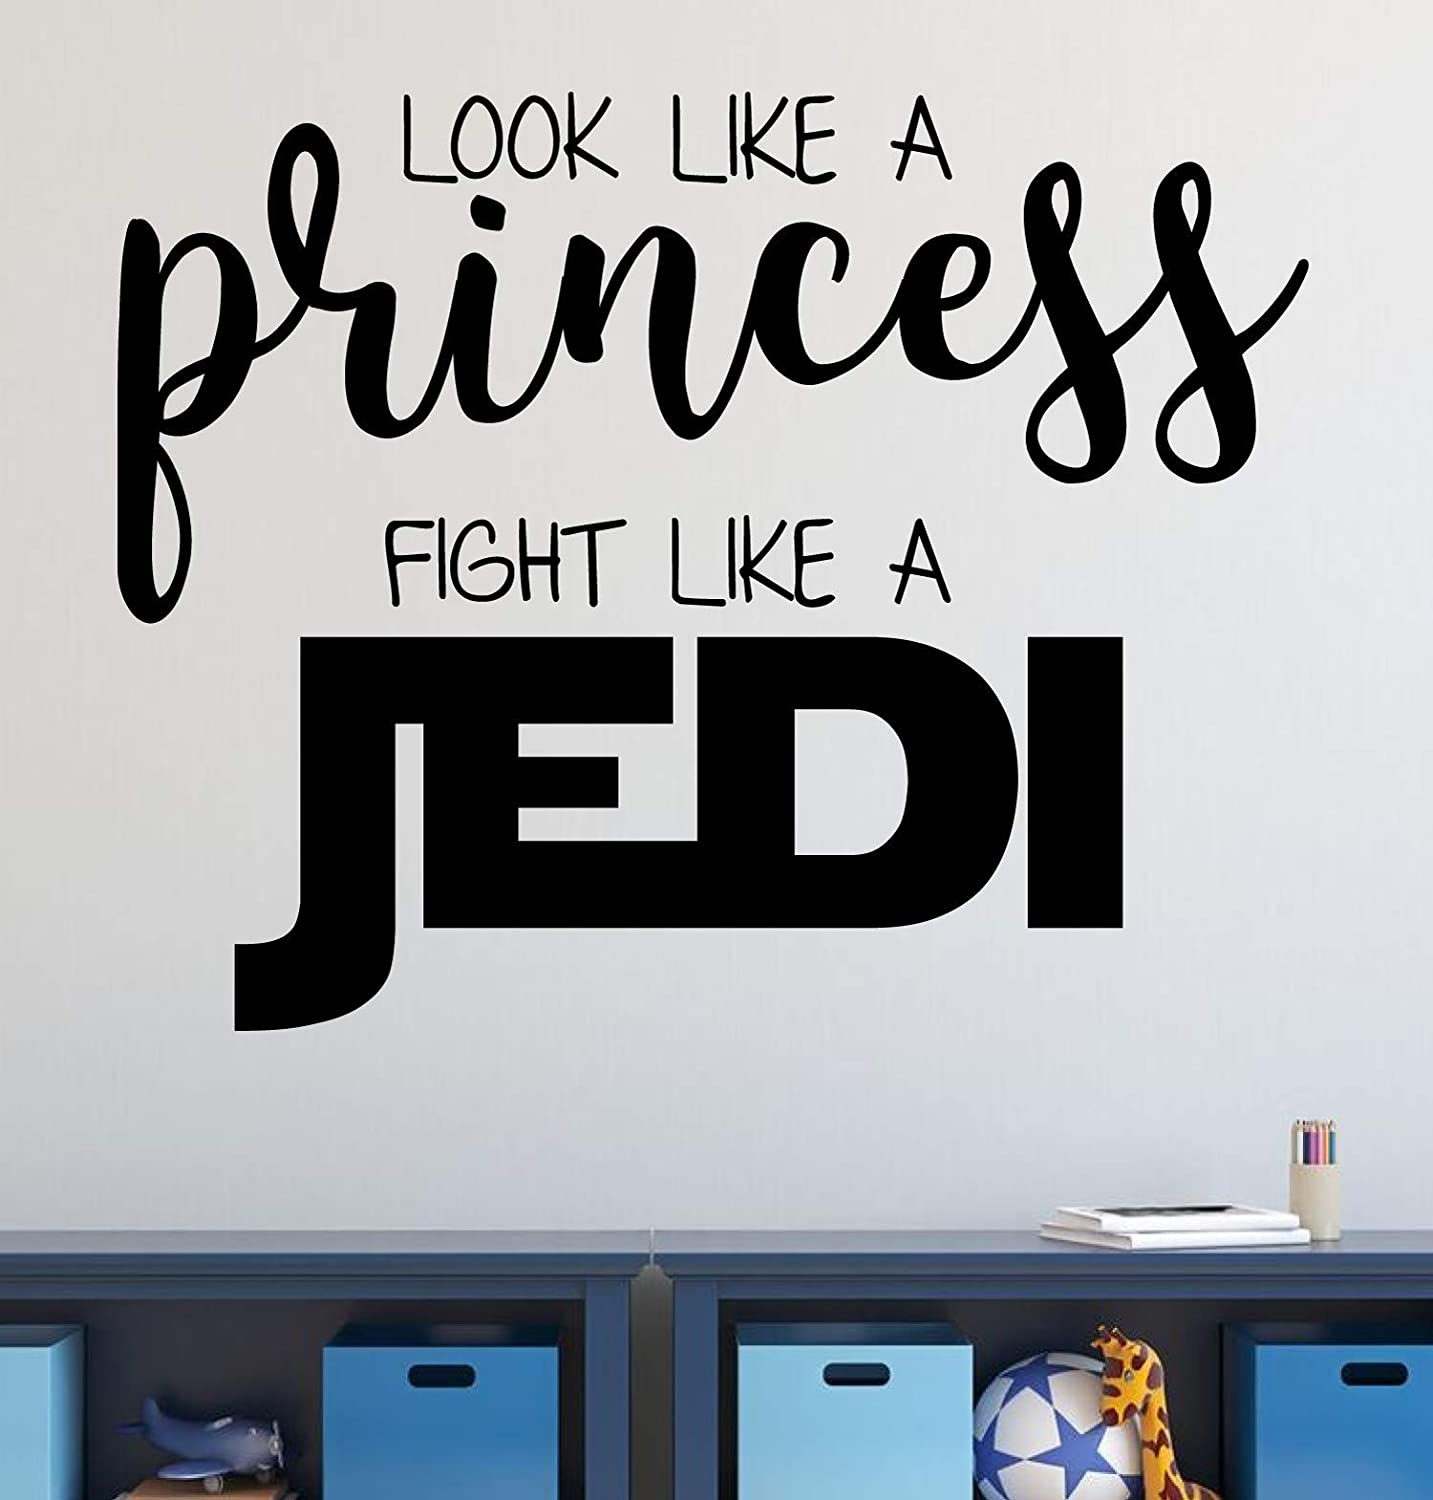 Vinyl Wall Decal for High quality new Girl's Bedroom Oakland Mall or Playroom Prin Star Wars